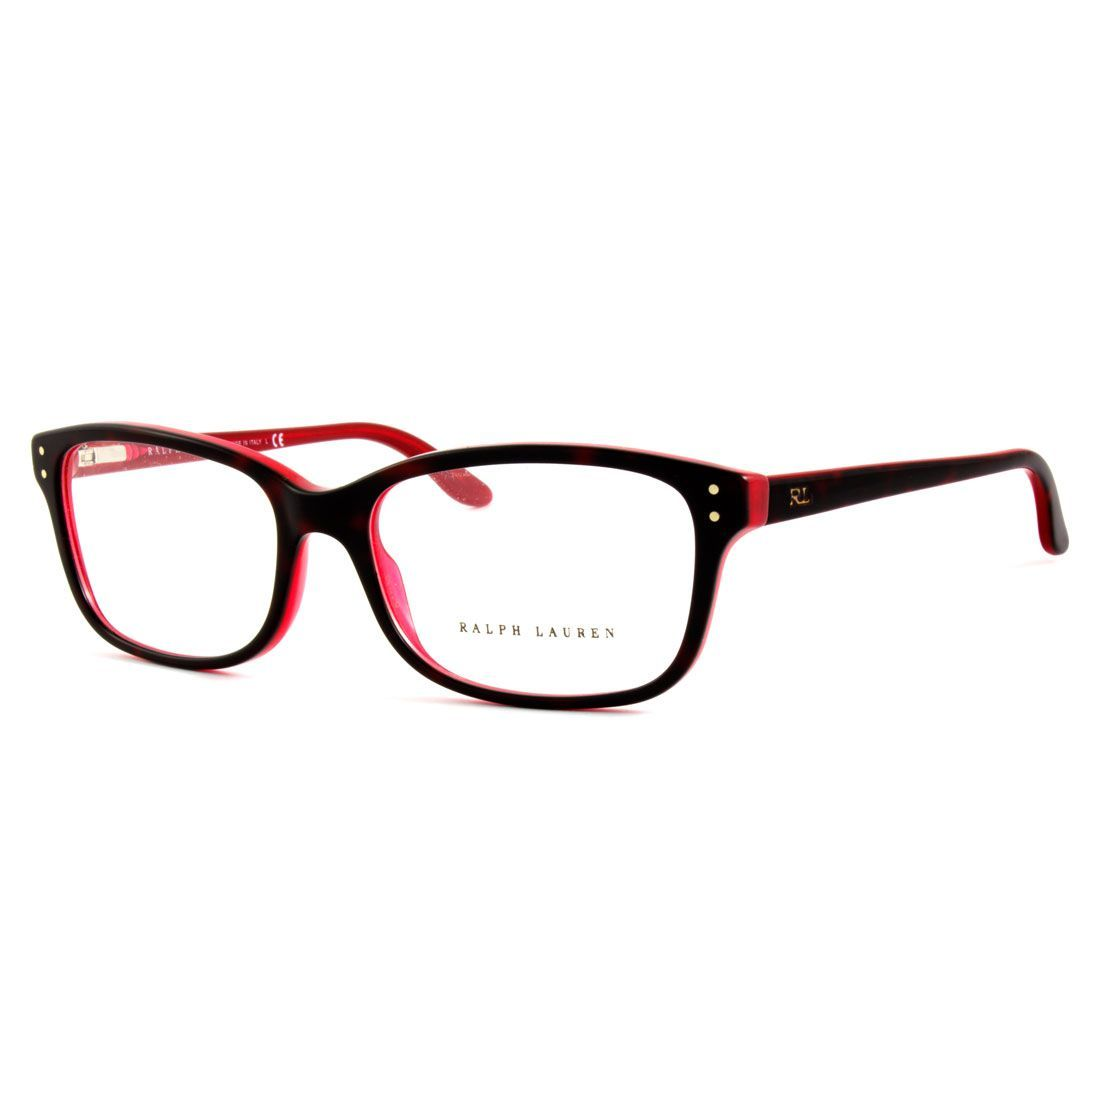 Eyeglass Frames Parts : Ralph Lauren Eyeglasses Parts